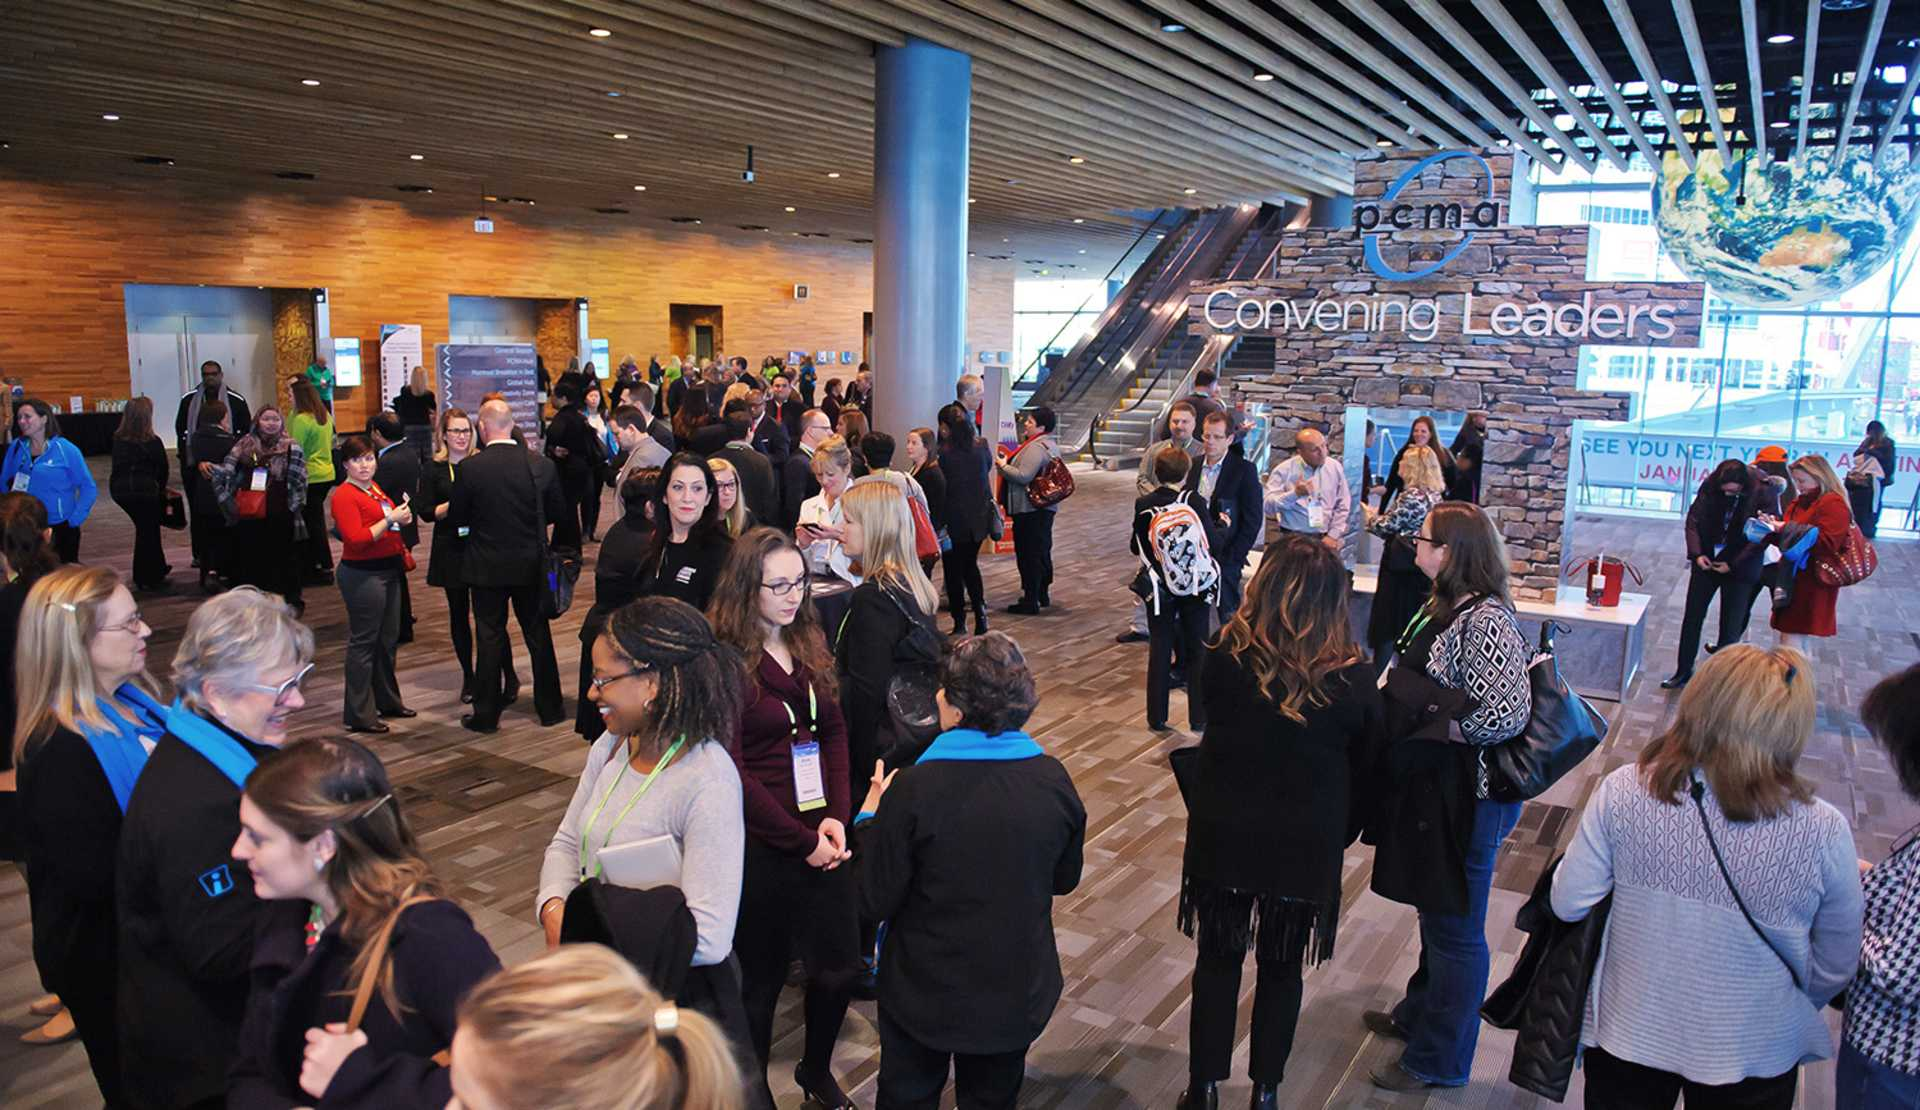 Delegates at the Vancouver Convention Centre